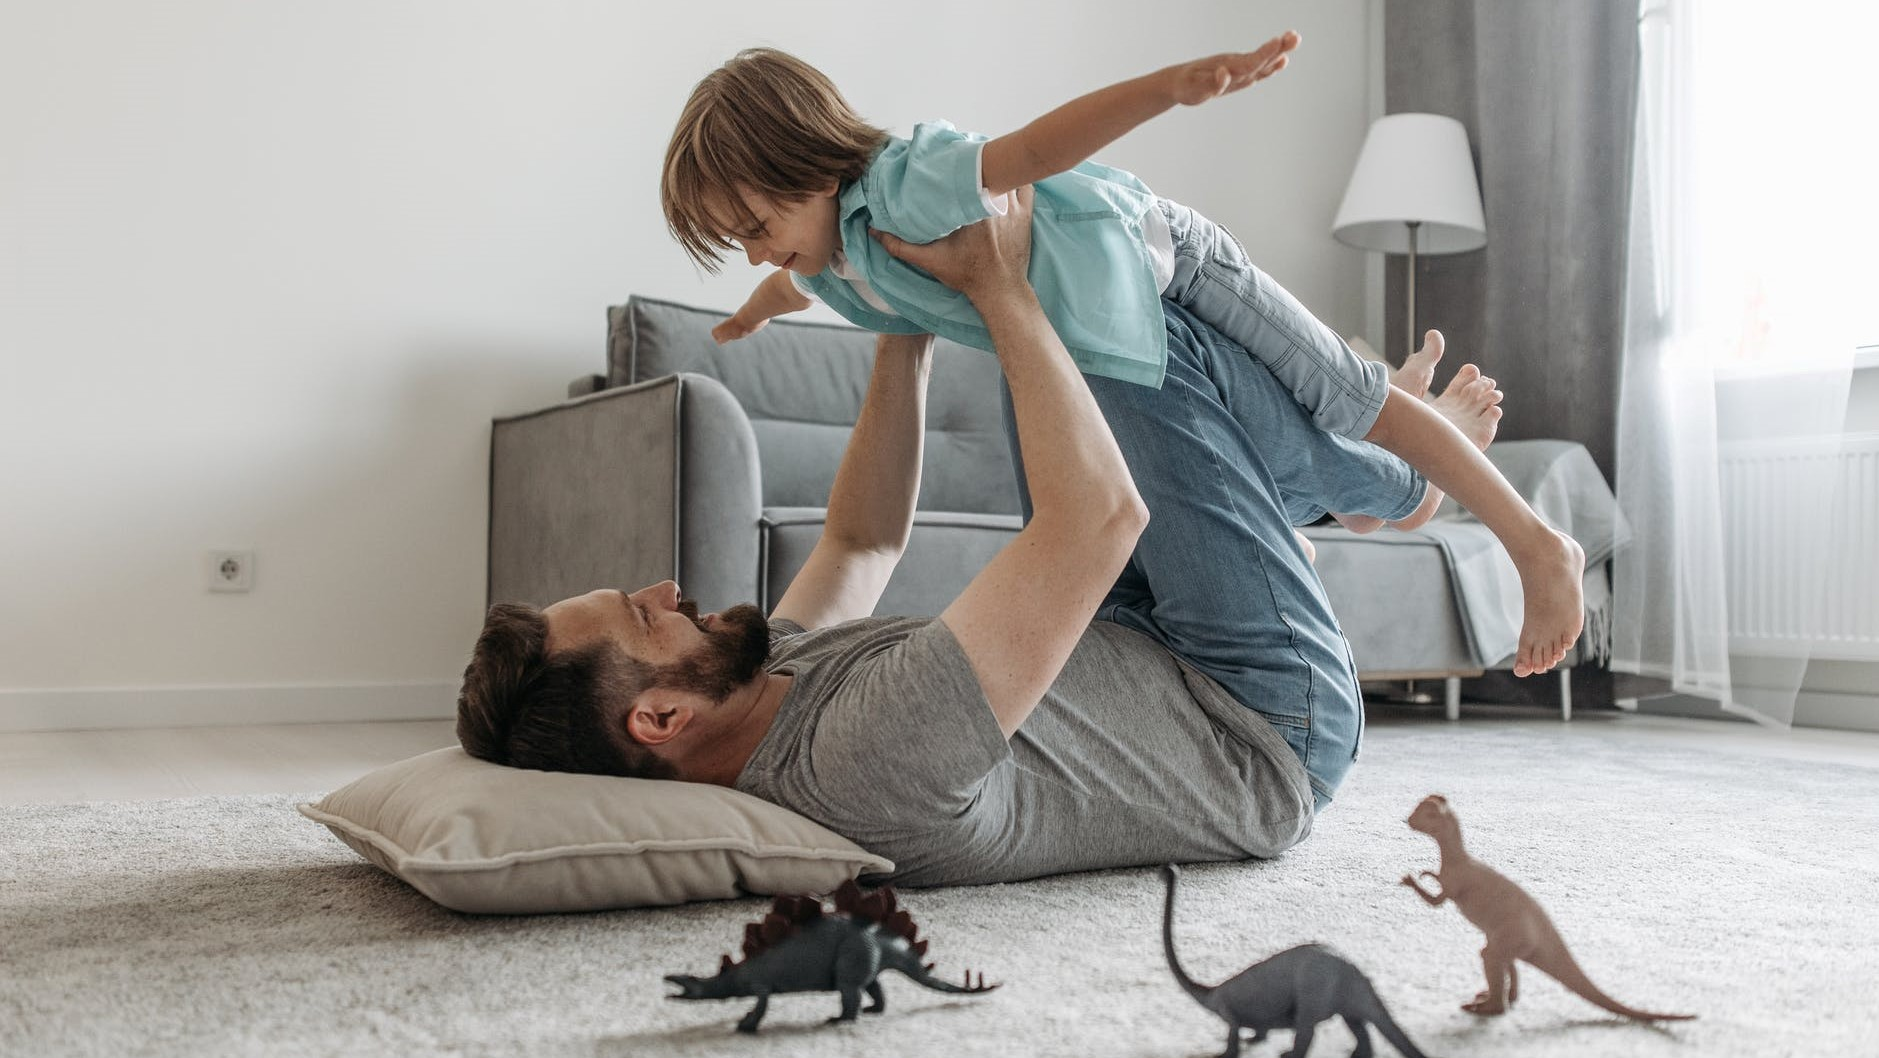 father lying on the floor holding his son above him with his arms out playing aeroplane